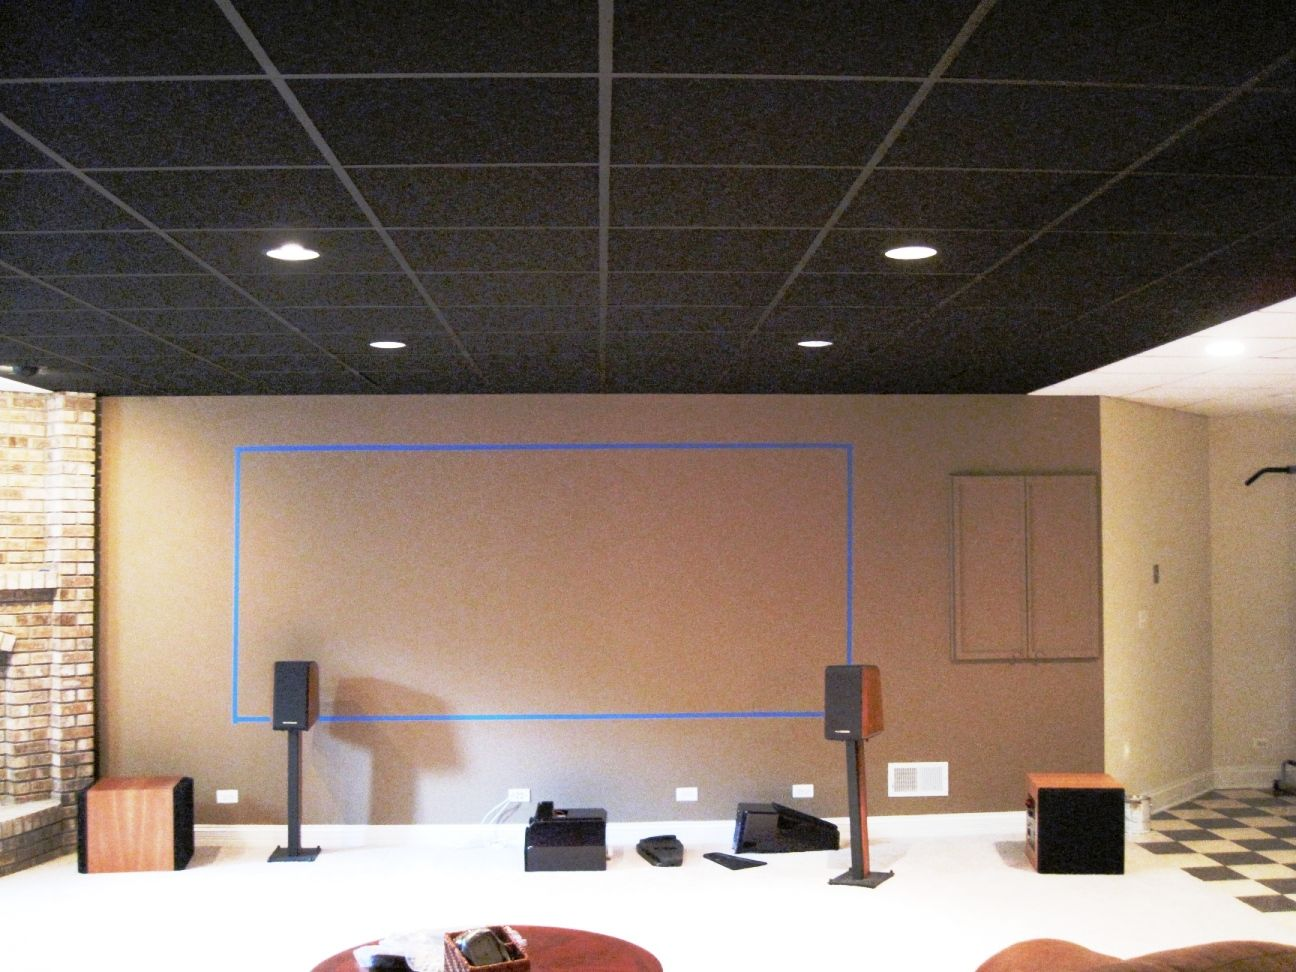 Black ceiling tiles with tan walls inside the blue painters tape black ceiling tiles with tan walls inside the blue painters tape ceiling tiles paintedpainted ceilingsdrop dailygadgetfo Image collections